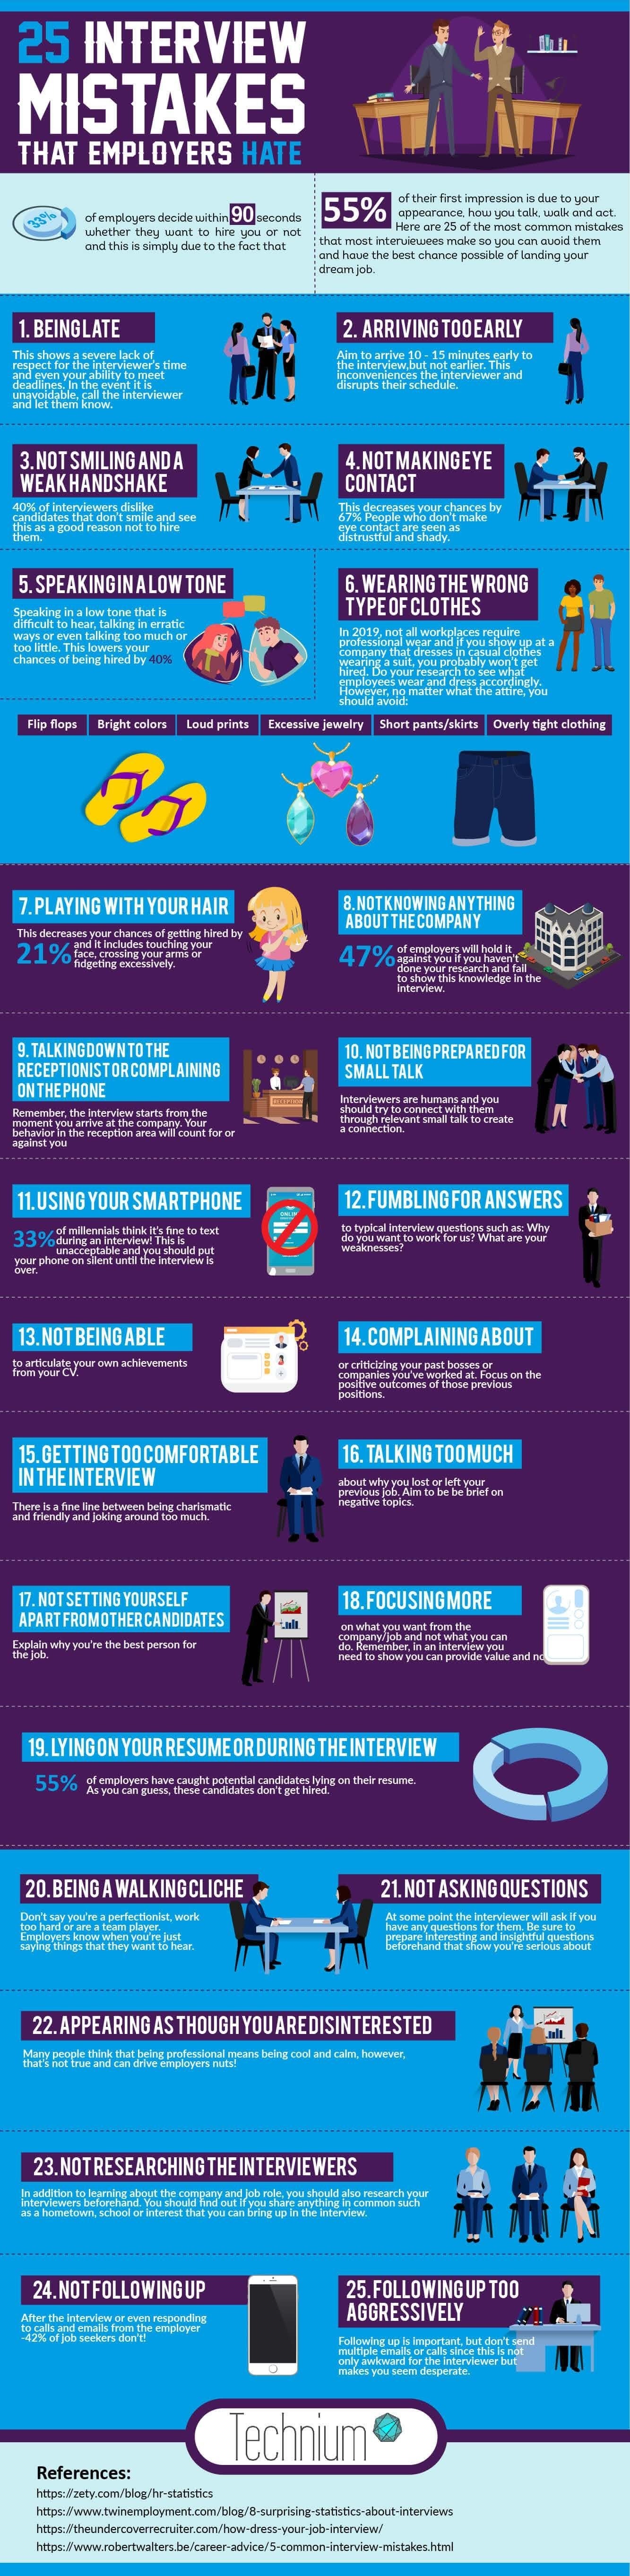 25 Interview Mistakes That Employers Hate #infographic